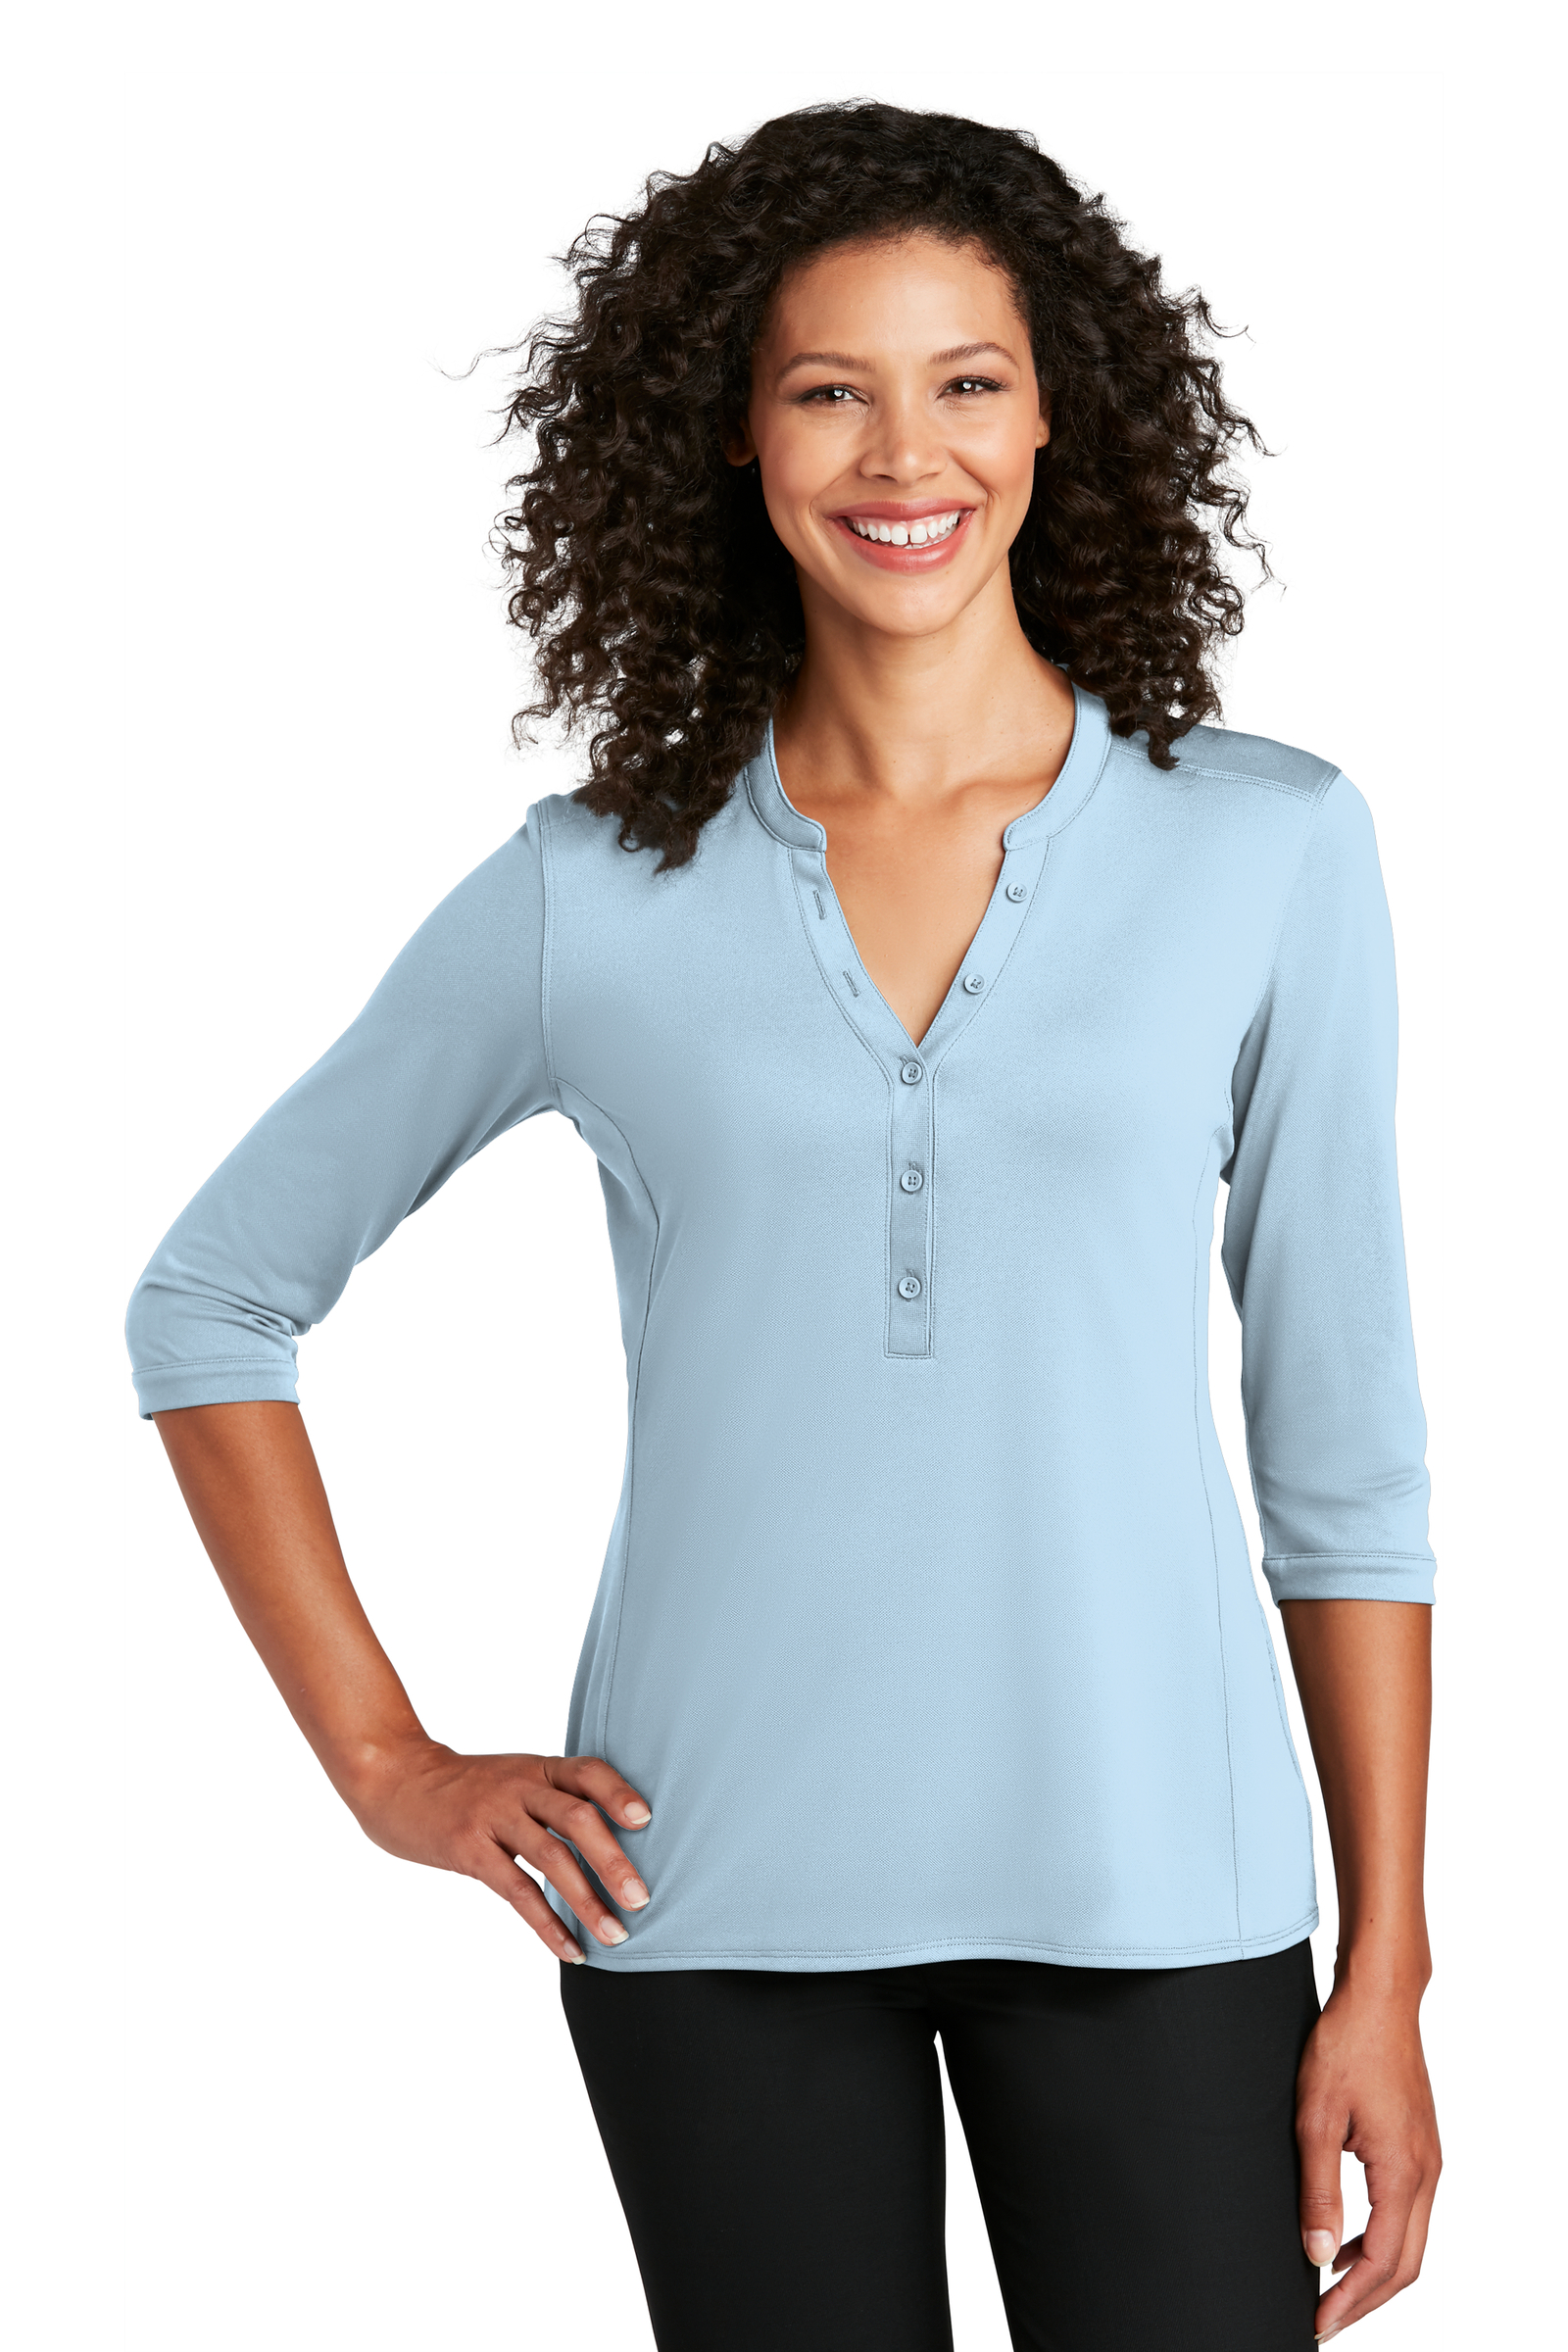 Port Authority Embroidered Women's UV Choice Pique Henley